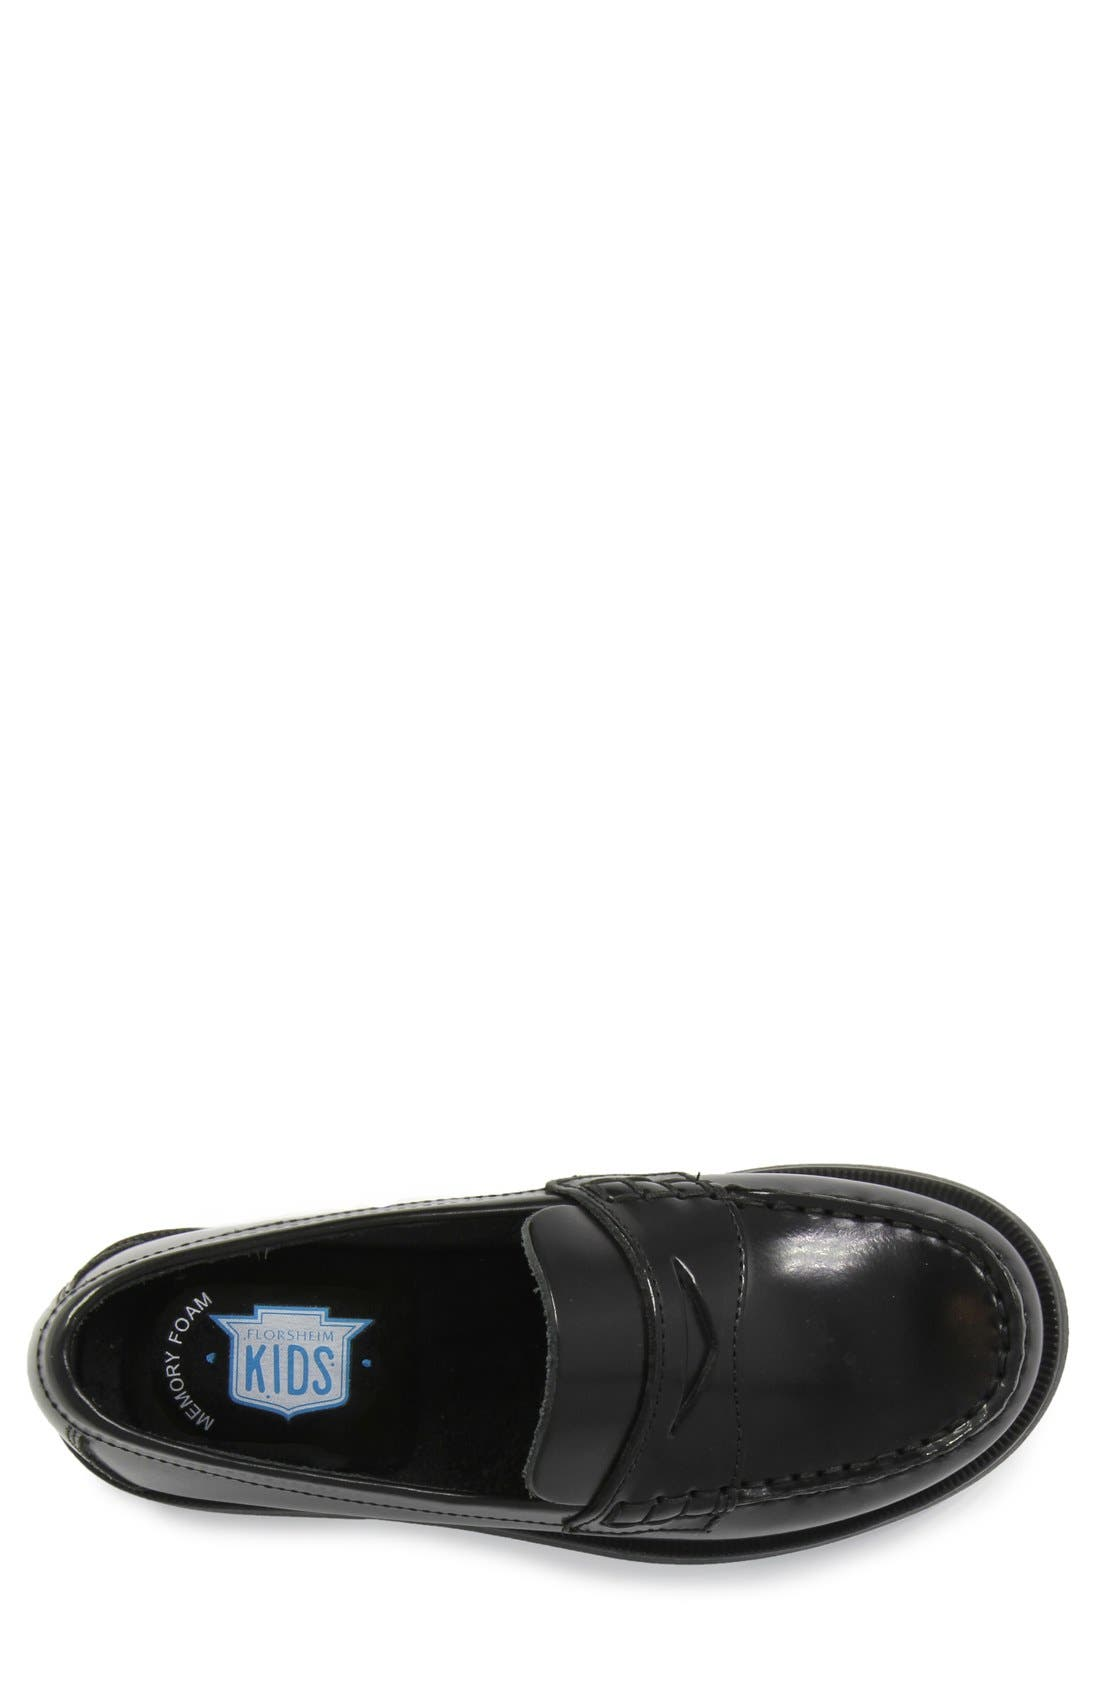 'Croquet' Penny Loafer,                             Alternate thumbnail 8, color,                             BLACK